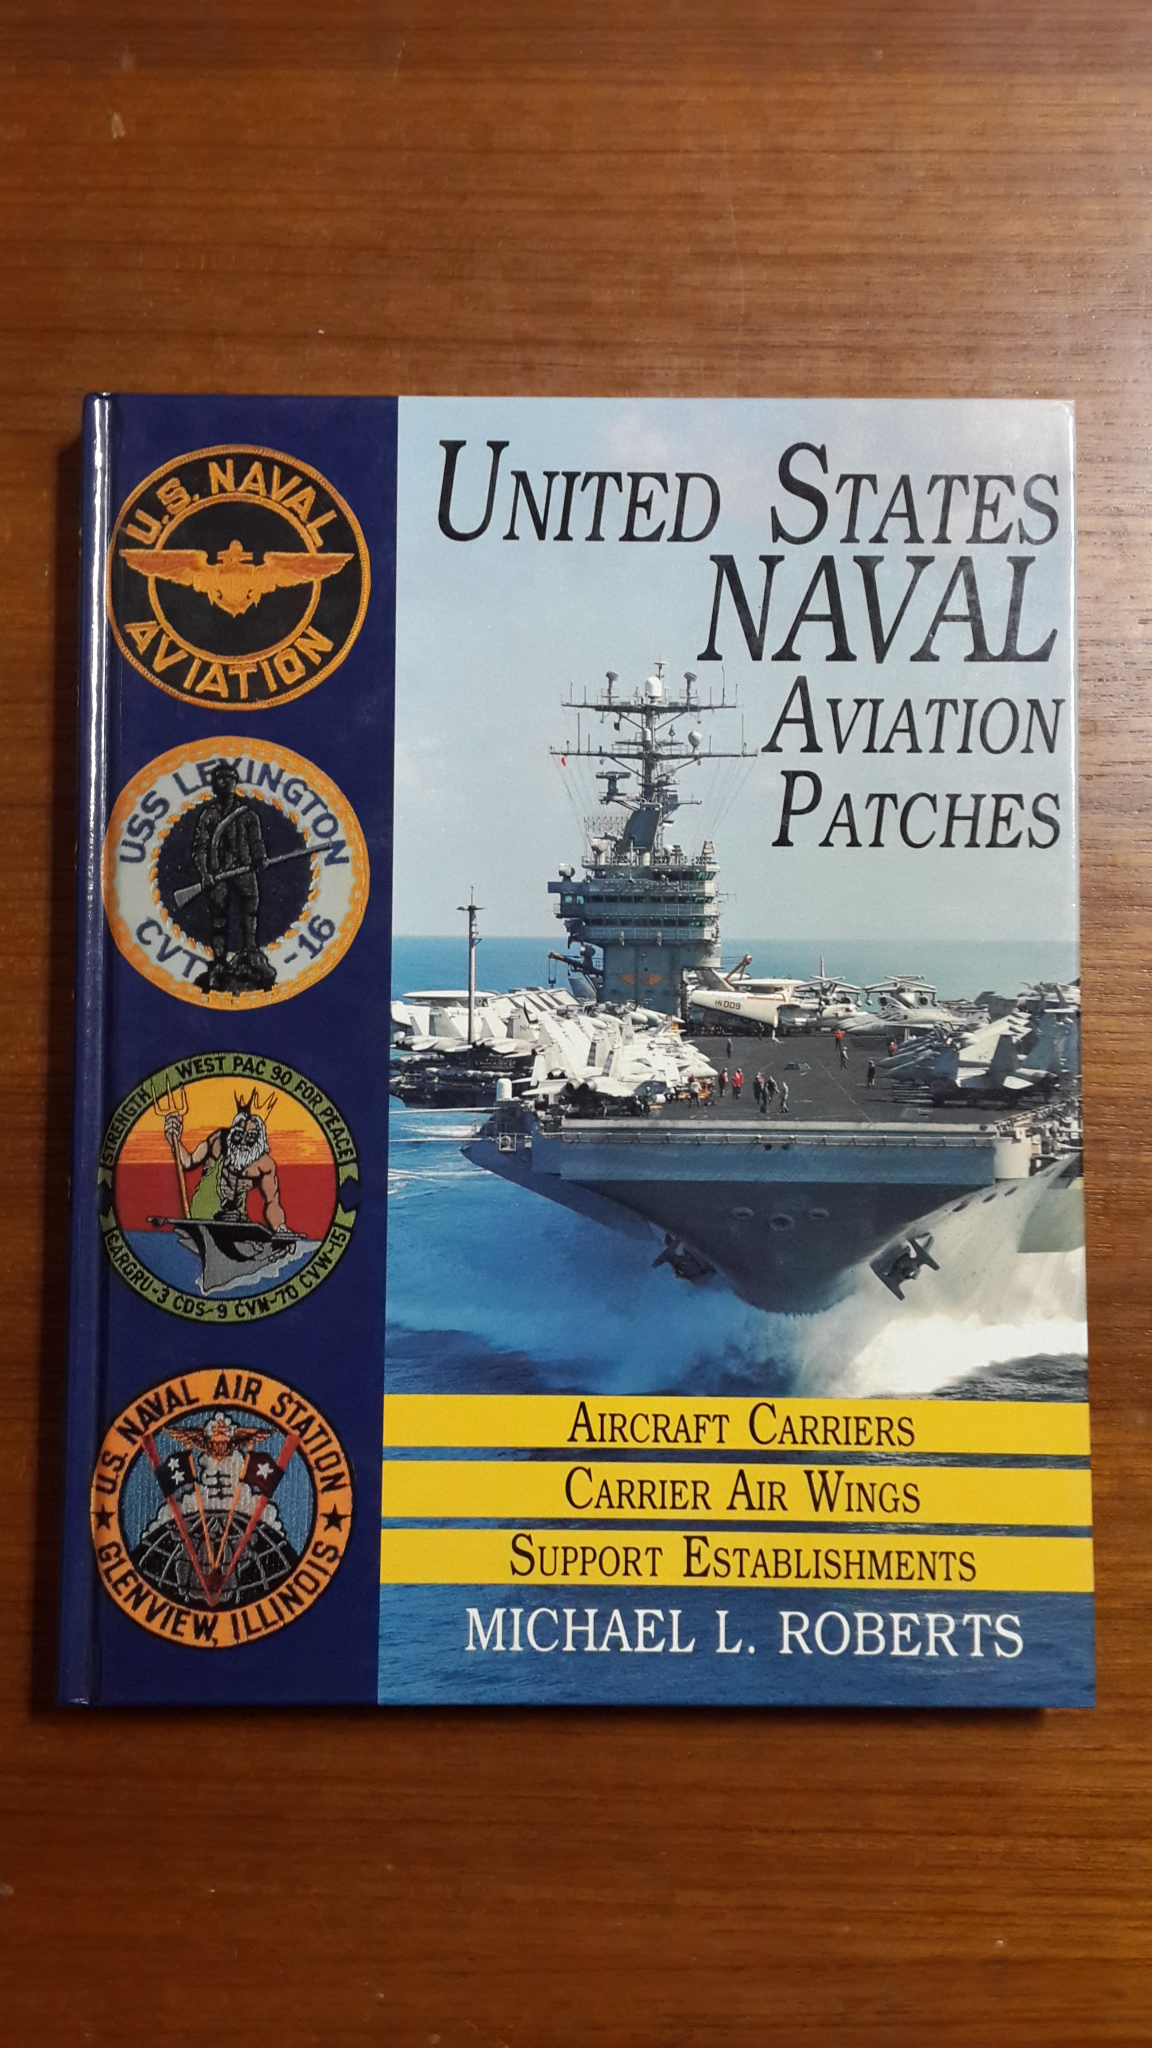 UNITED STATES NAVAL AVIATION PATCHES / MICHAEL L. ROBERTS